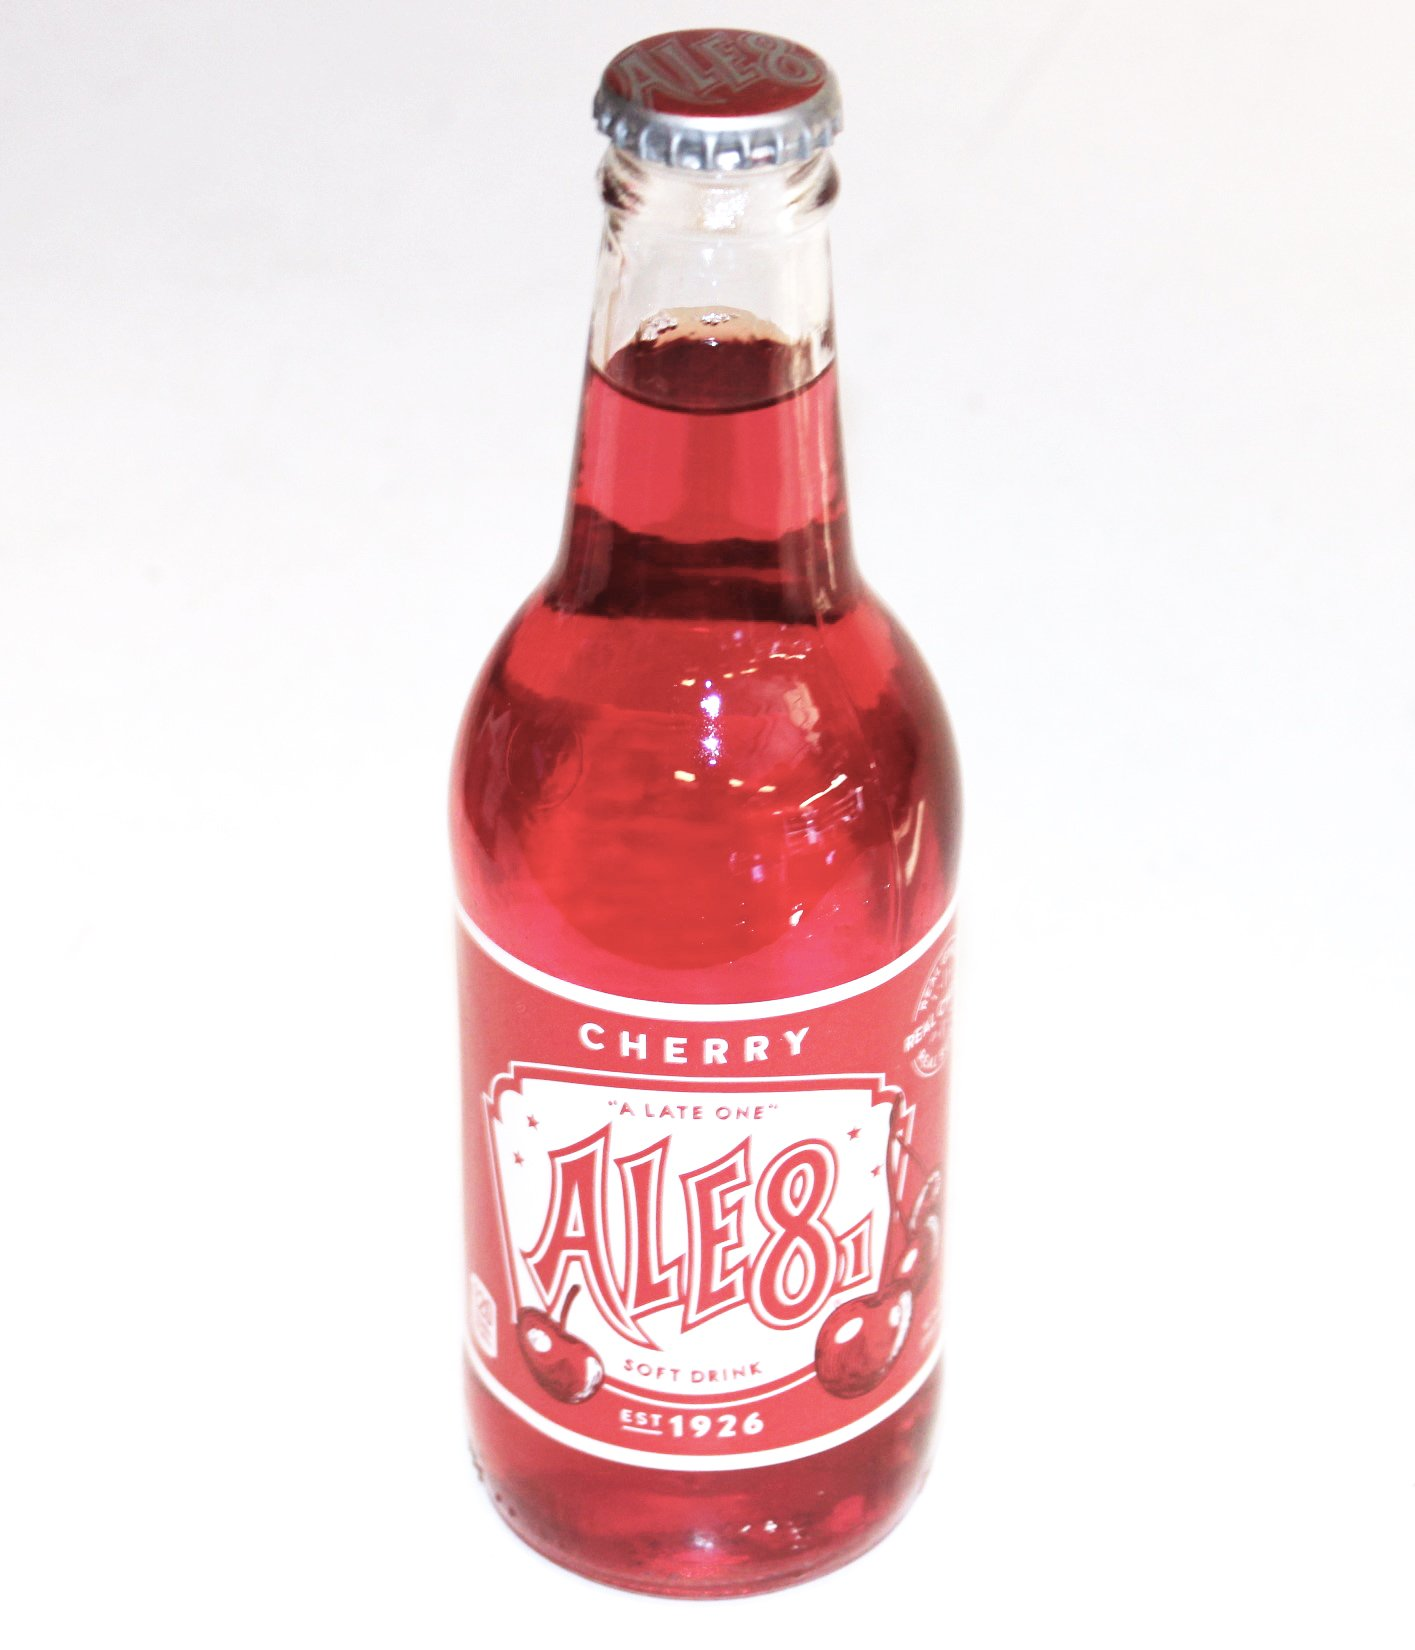 Ale 8 One Special Edition Cherry, 12 ounces (1 Glass Bottle)